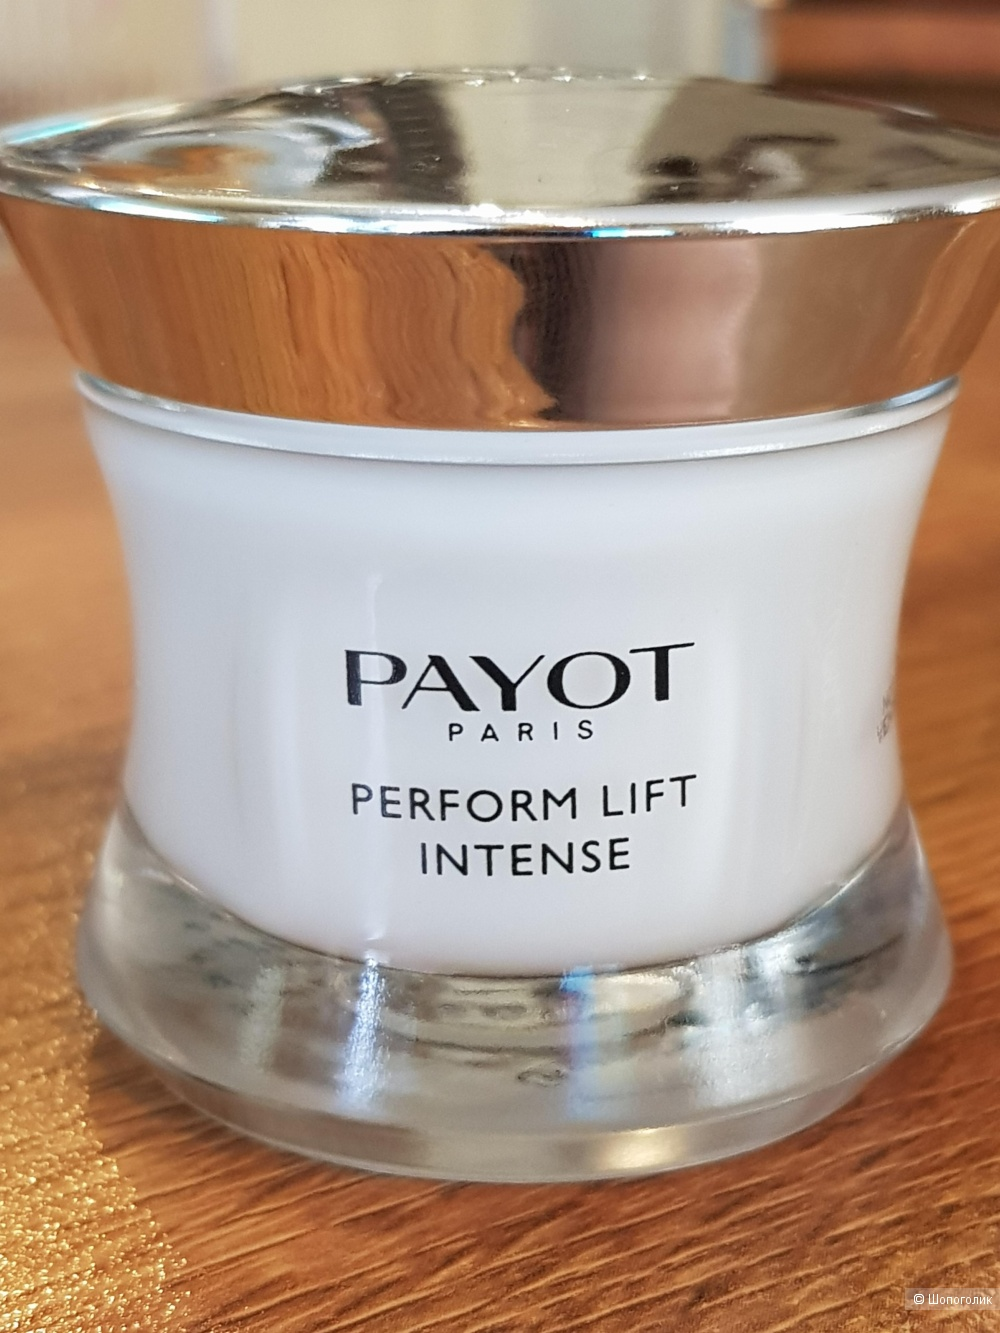 Payot Perform Lift Intense , дневной крем для лица, 50 ml